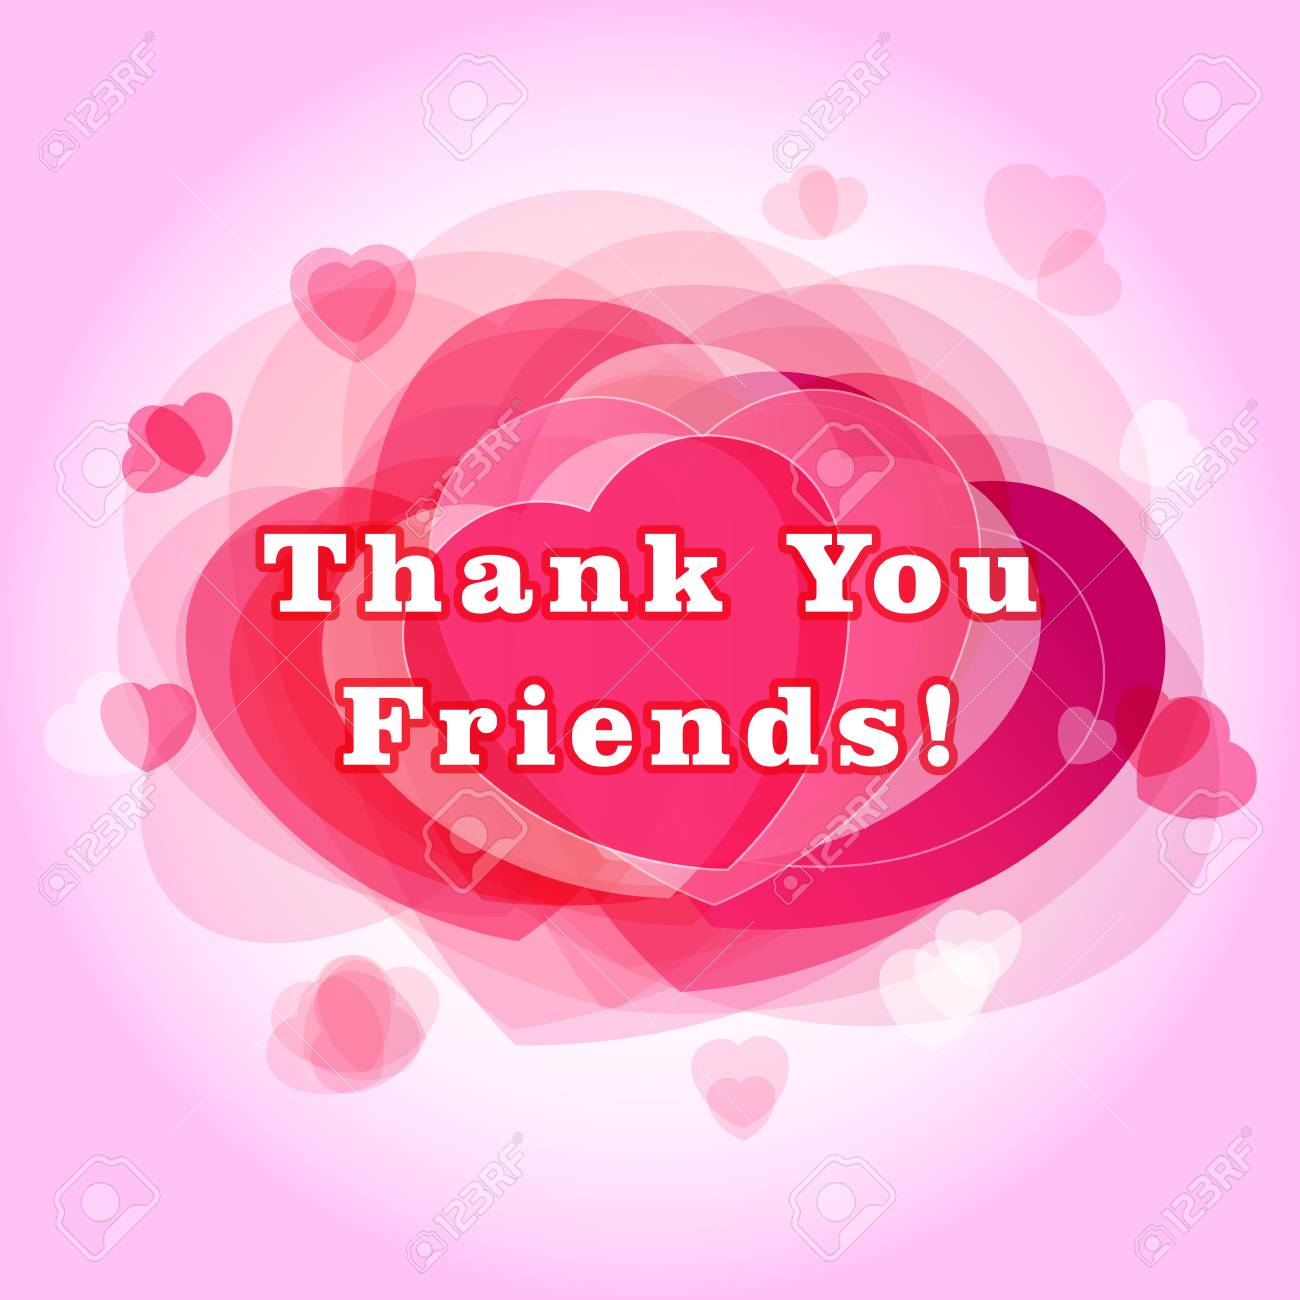 Thank You Friends Greeting Card The Gratitude Picture For Friends